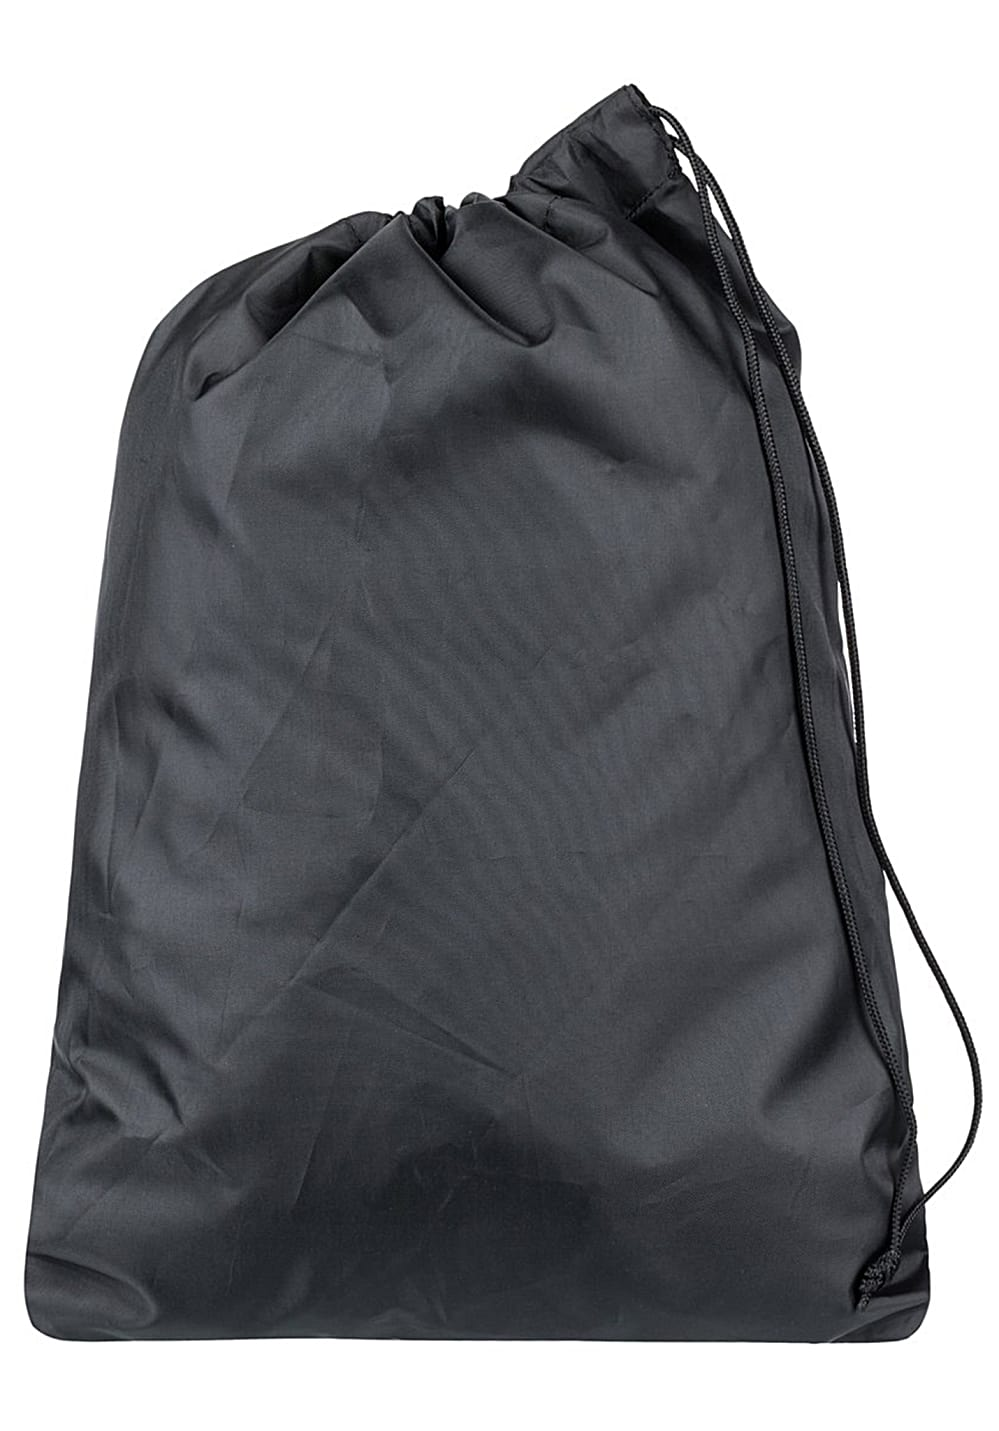 aa32cd2065 Next. DC. Brenttenberger 40L - Gym Bag for Men. €79.95. incl. VAT plus  shipping costs. Size Chart